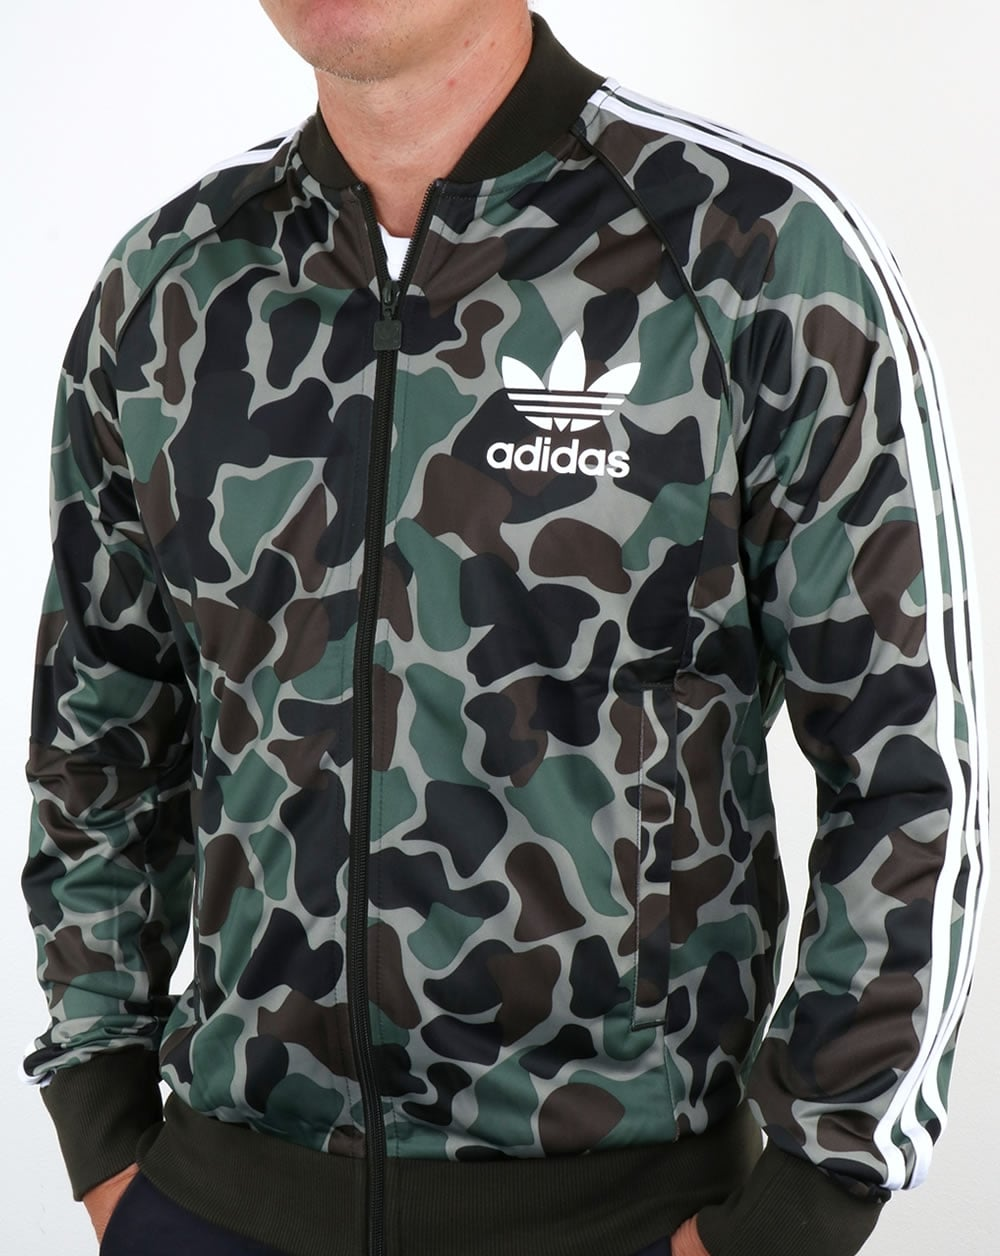 Adidas Originals Camo Superstar Track Top